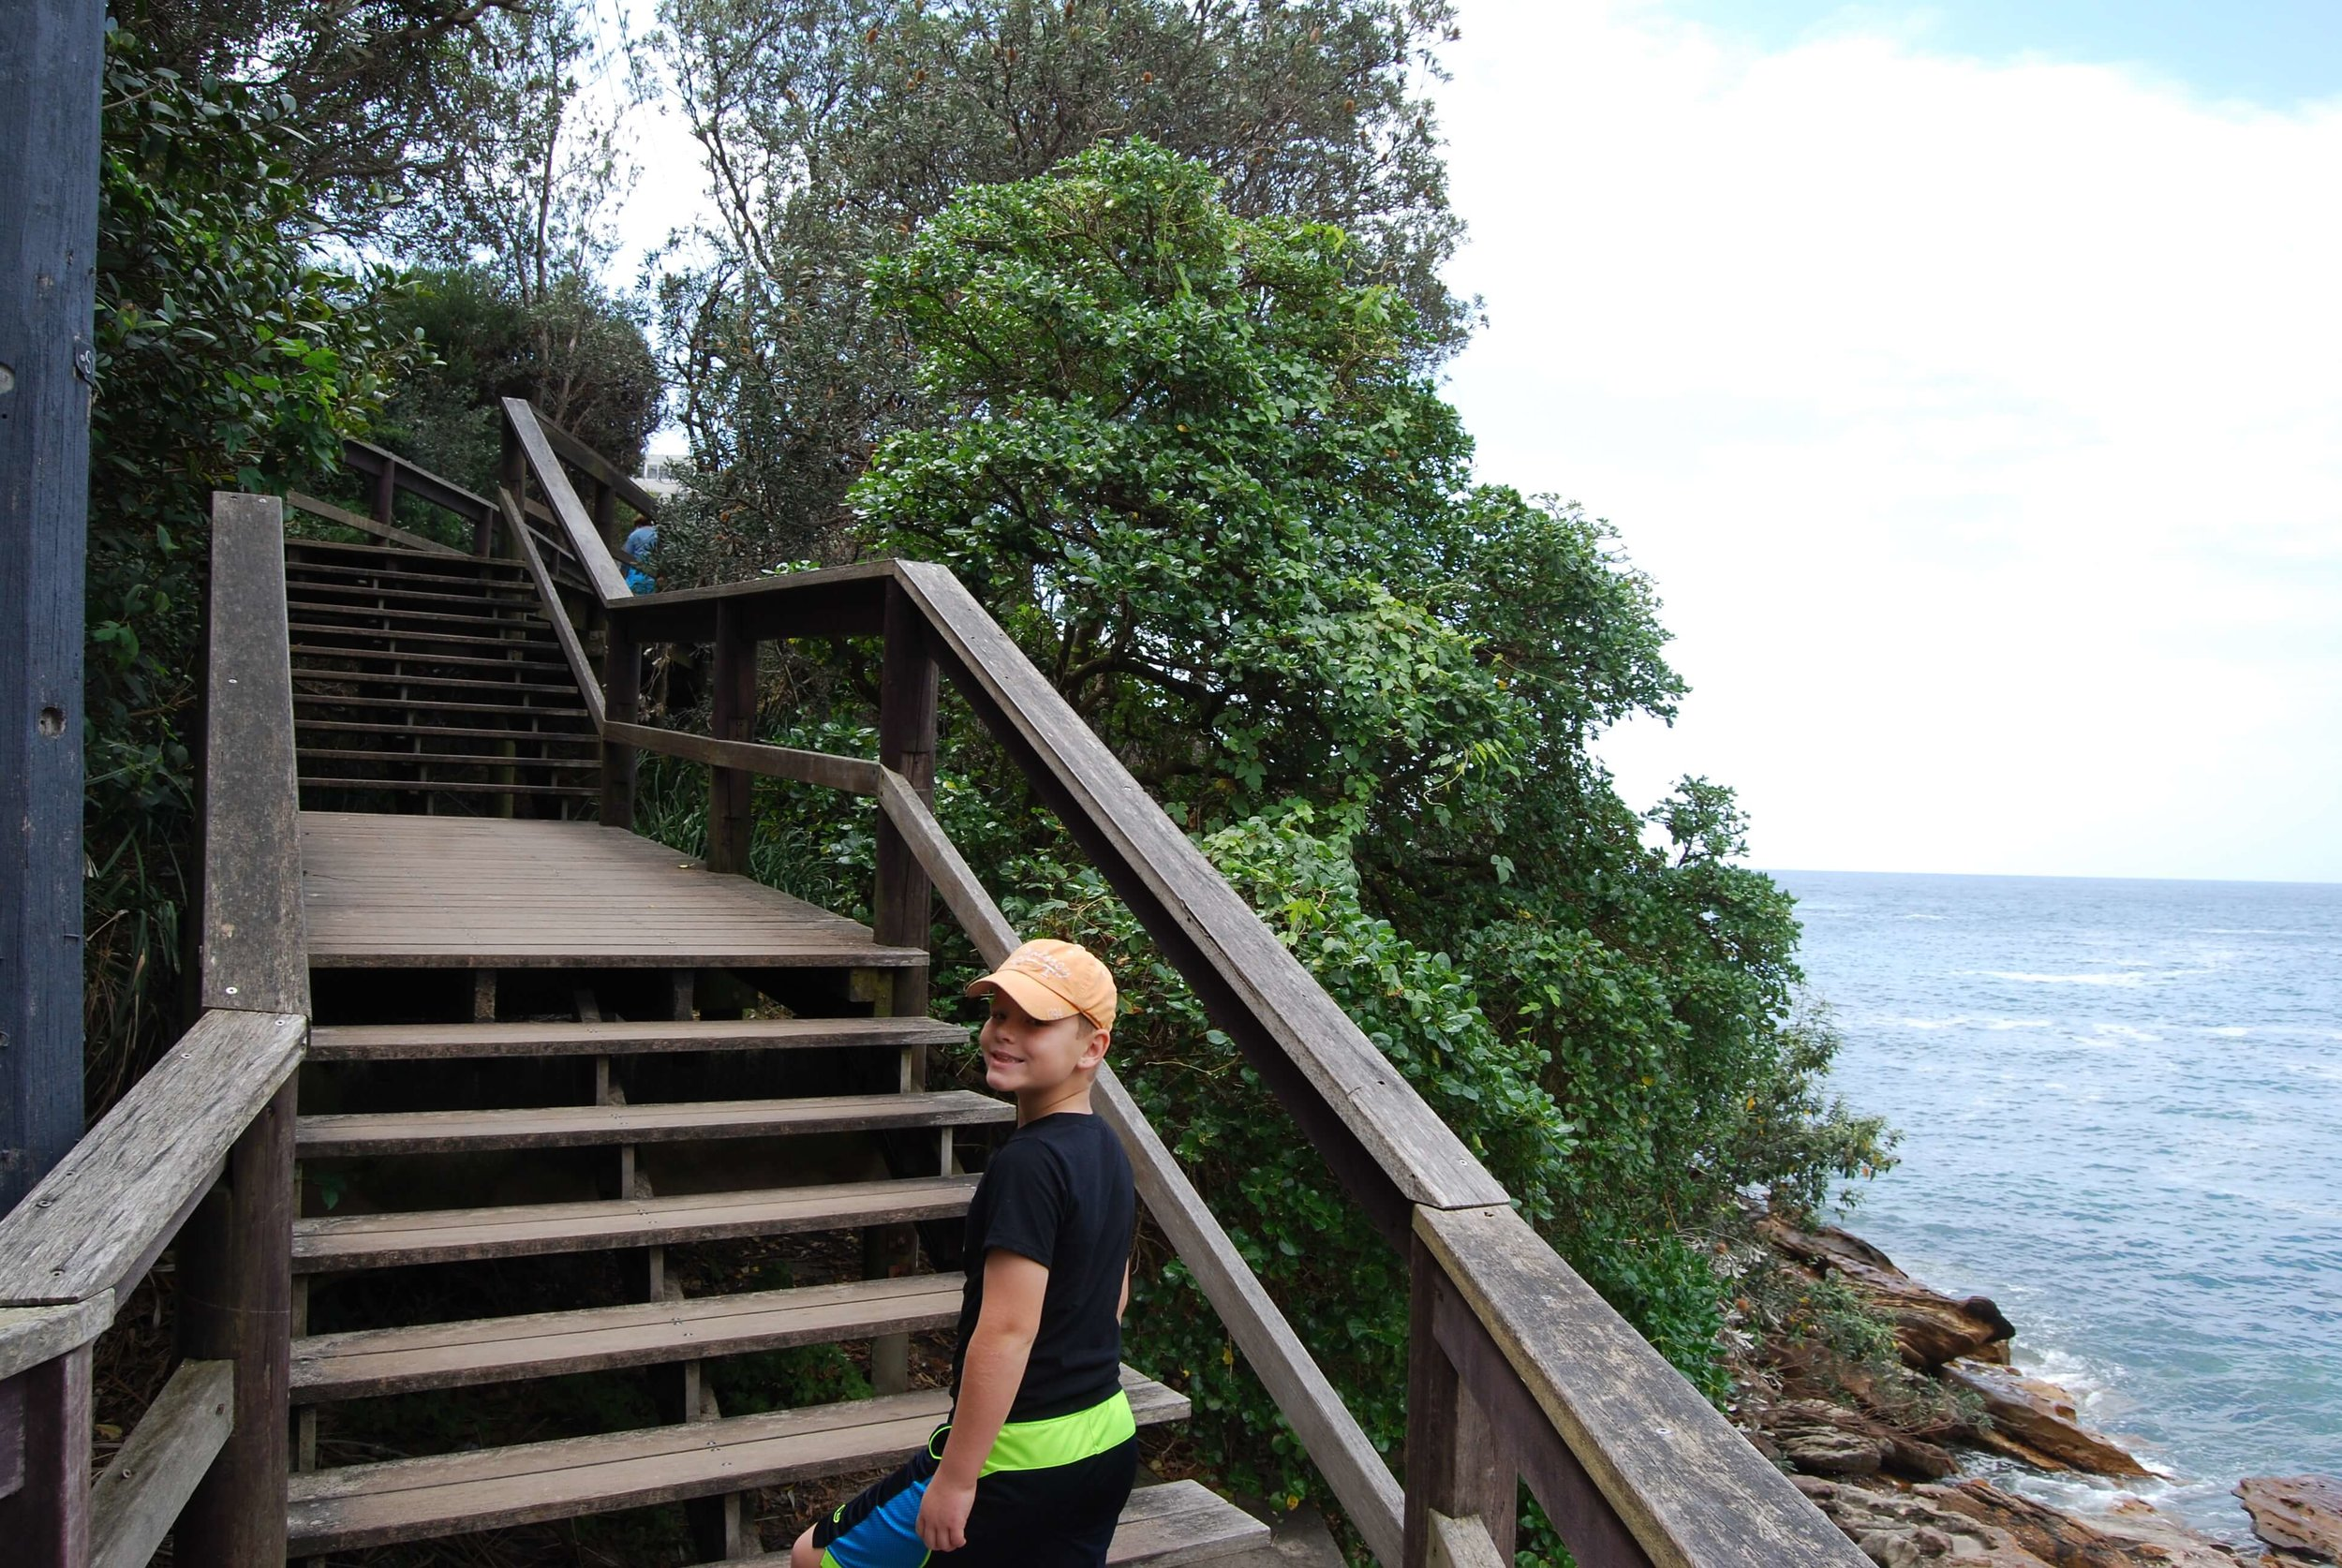 There are sections of stairs on the coastal walk that would be very difficult with a stroller. This photo is near Gordons Bay.